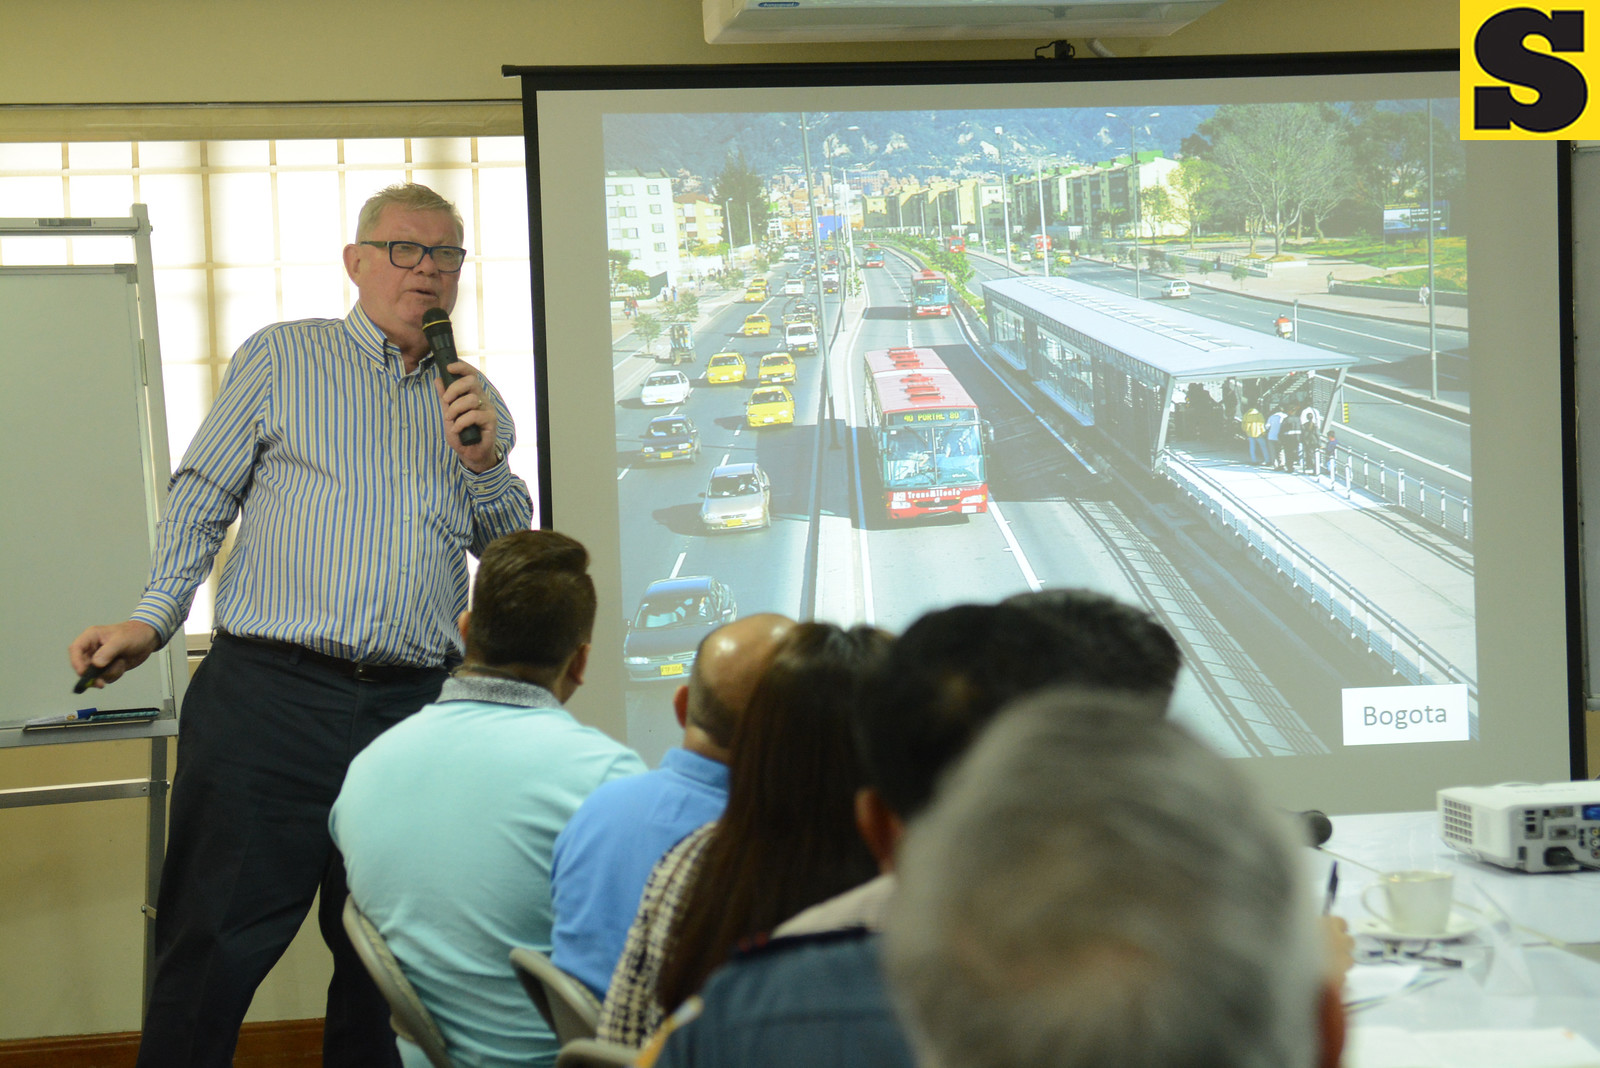 BUS RAPID TRANSIT. Government is acquiring the road right-of-way for a bus rapid transit (BRT) system that is targeted to start serving around 330,000 commuters by 2019. (SunStar File Photo)